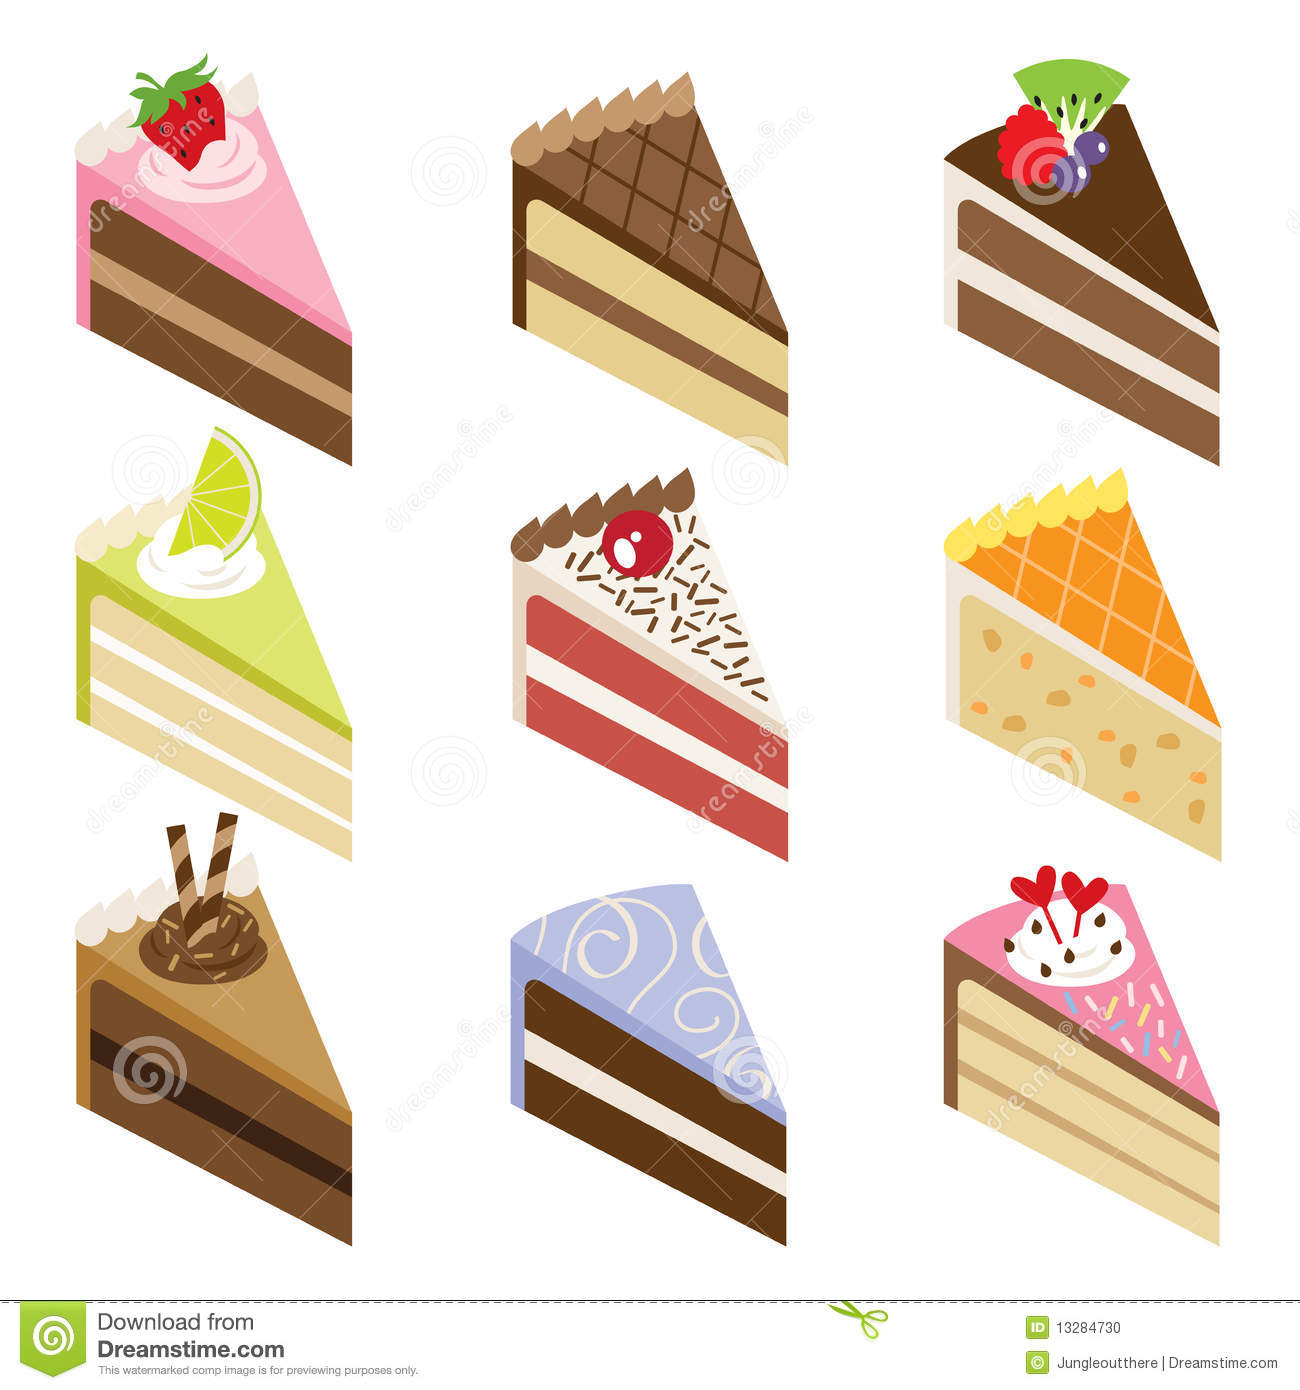 Cake slice clipart free clipart free Delicious Cake Slices Stock Photo - Image: 13284730 clipart free